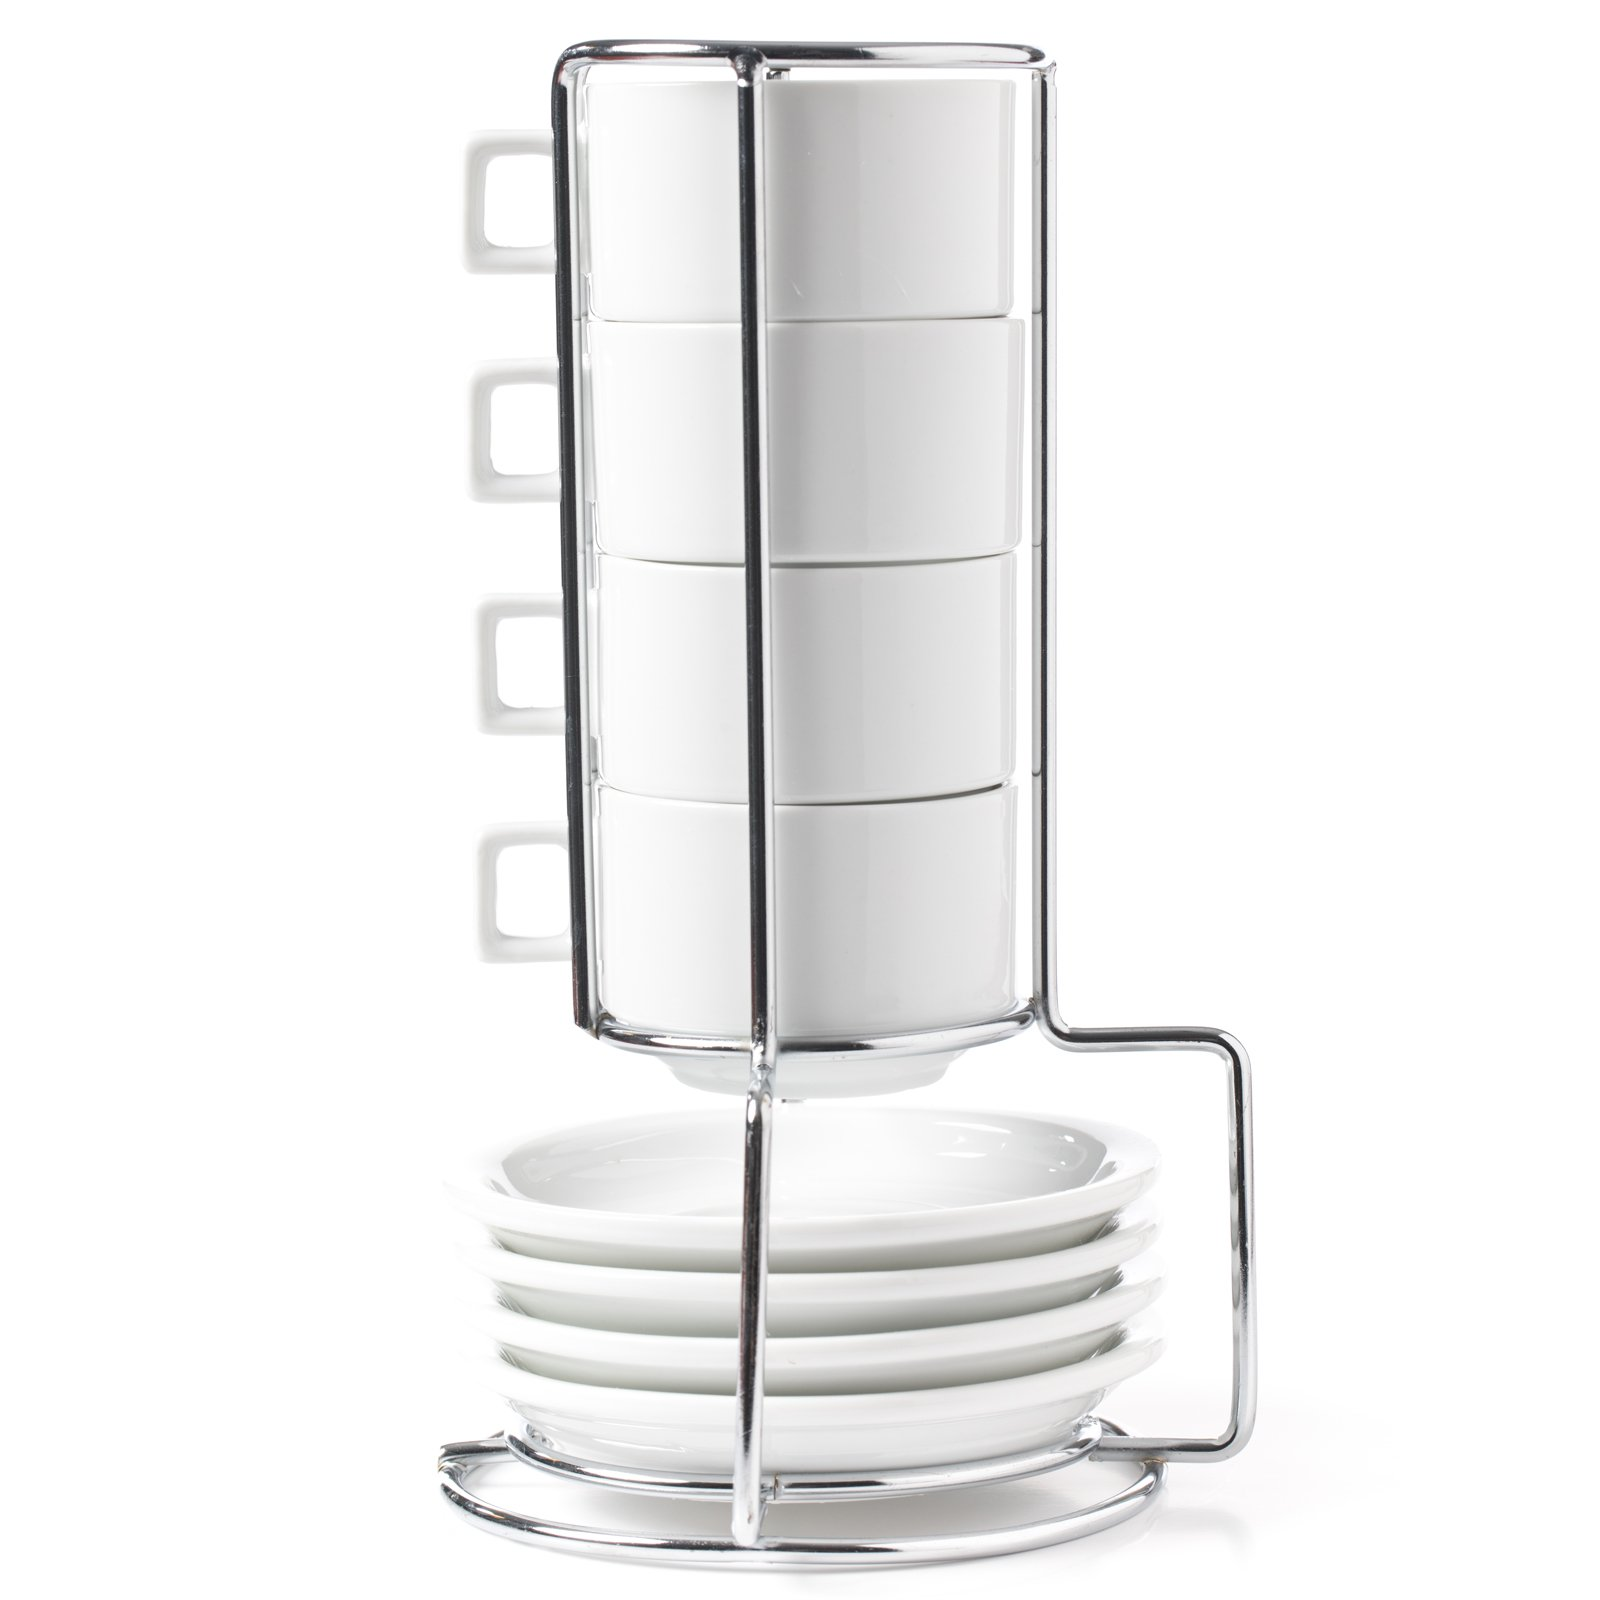 HUJI Stack-able Porcelain 3.2 OZ Espresso Turkish Coffee Cups and Saucer with Chrome Rack (9 Piece Set) (1)